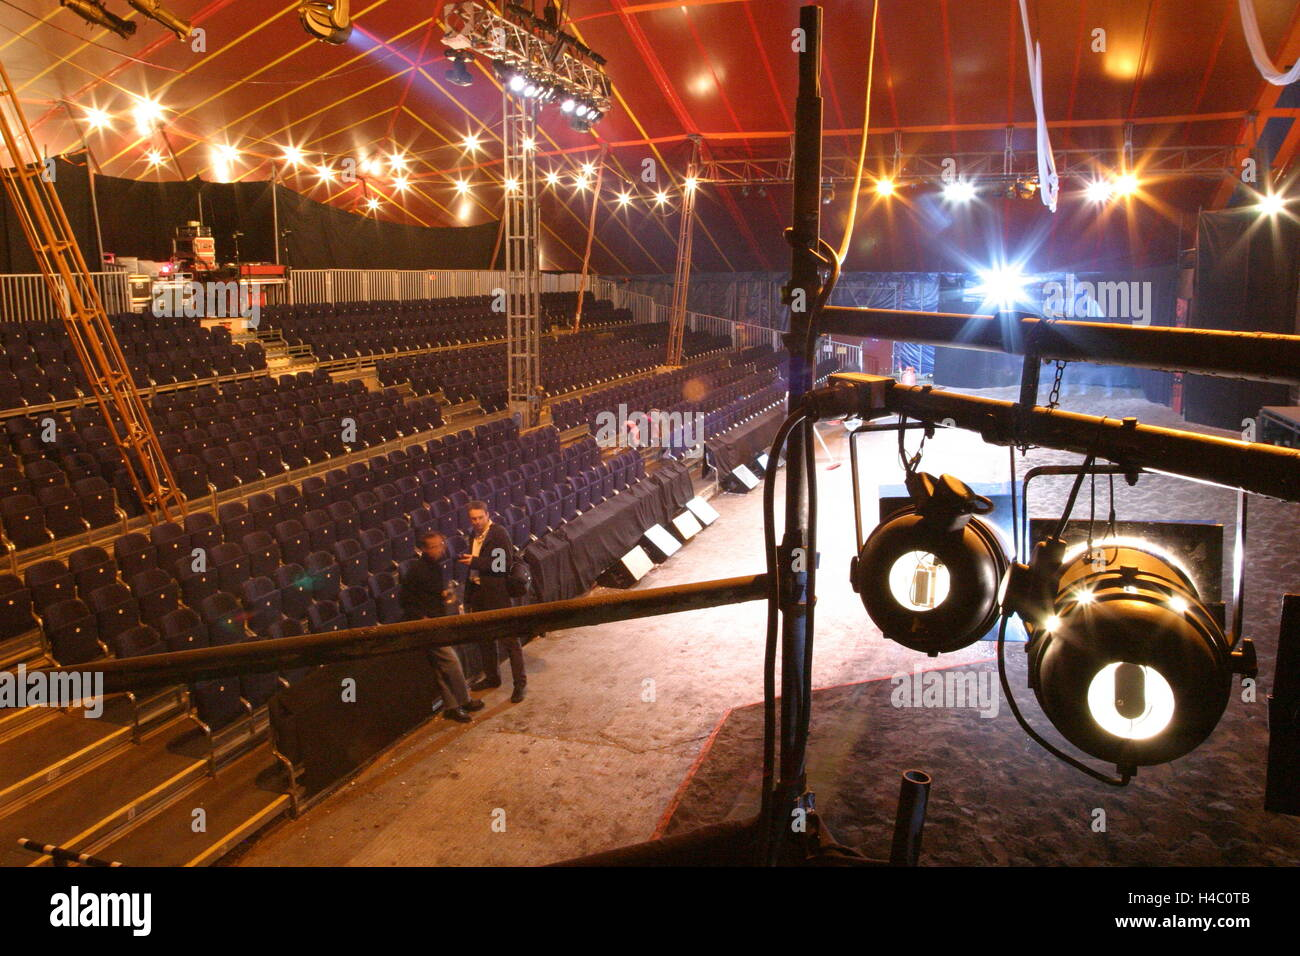 Interior of a newly erected circus-style tent showing sand performance area tiered seating and spotlights in the foreground & Interior of a newly erected circus-style tent showing sand Stock ...